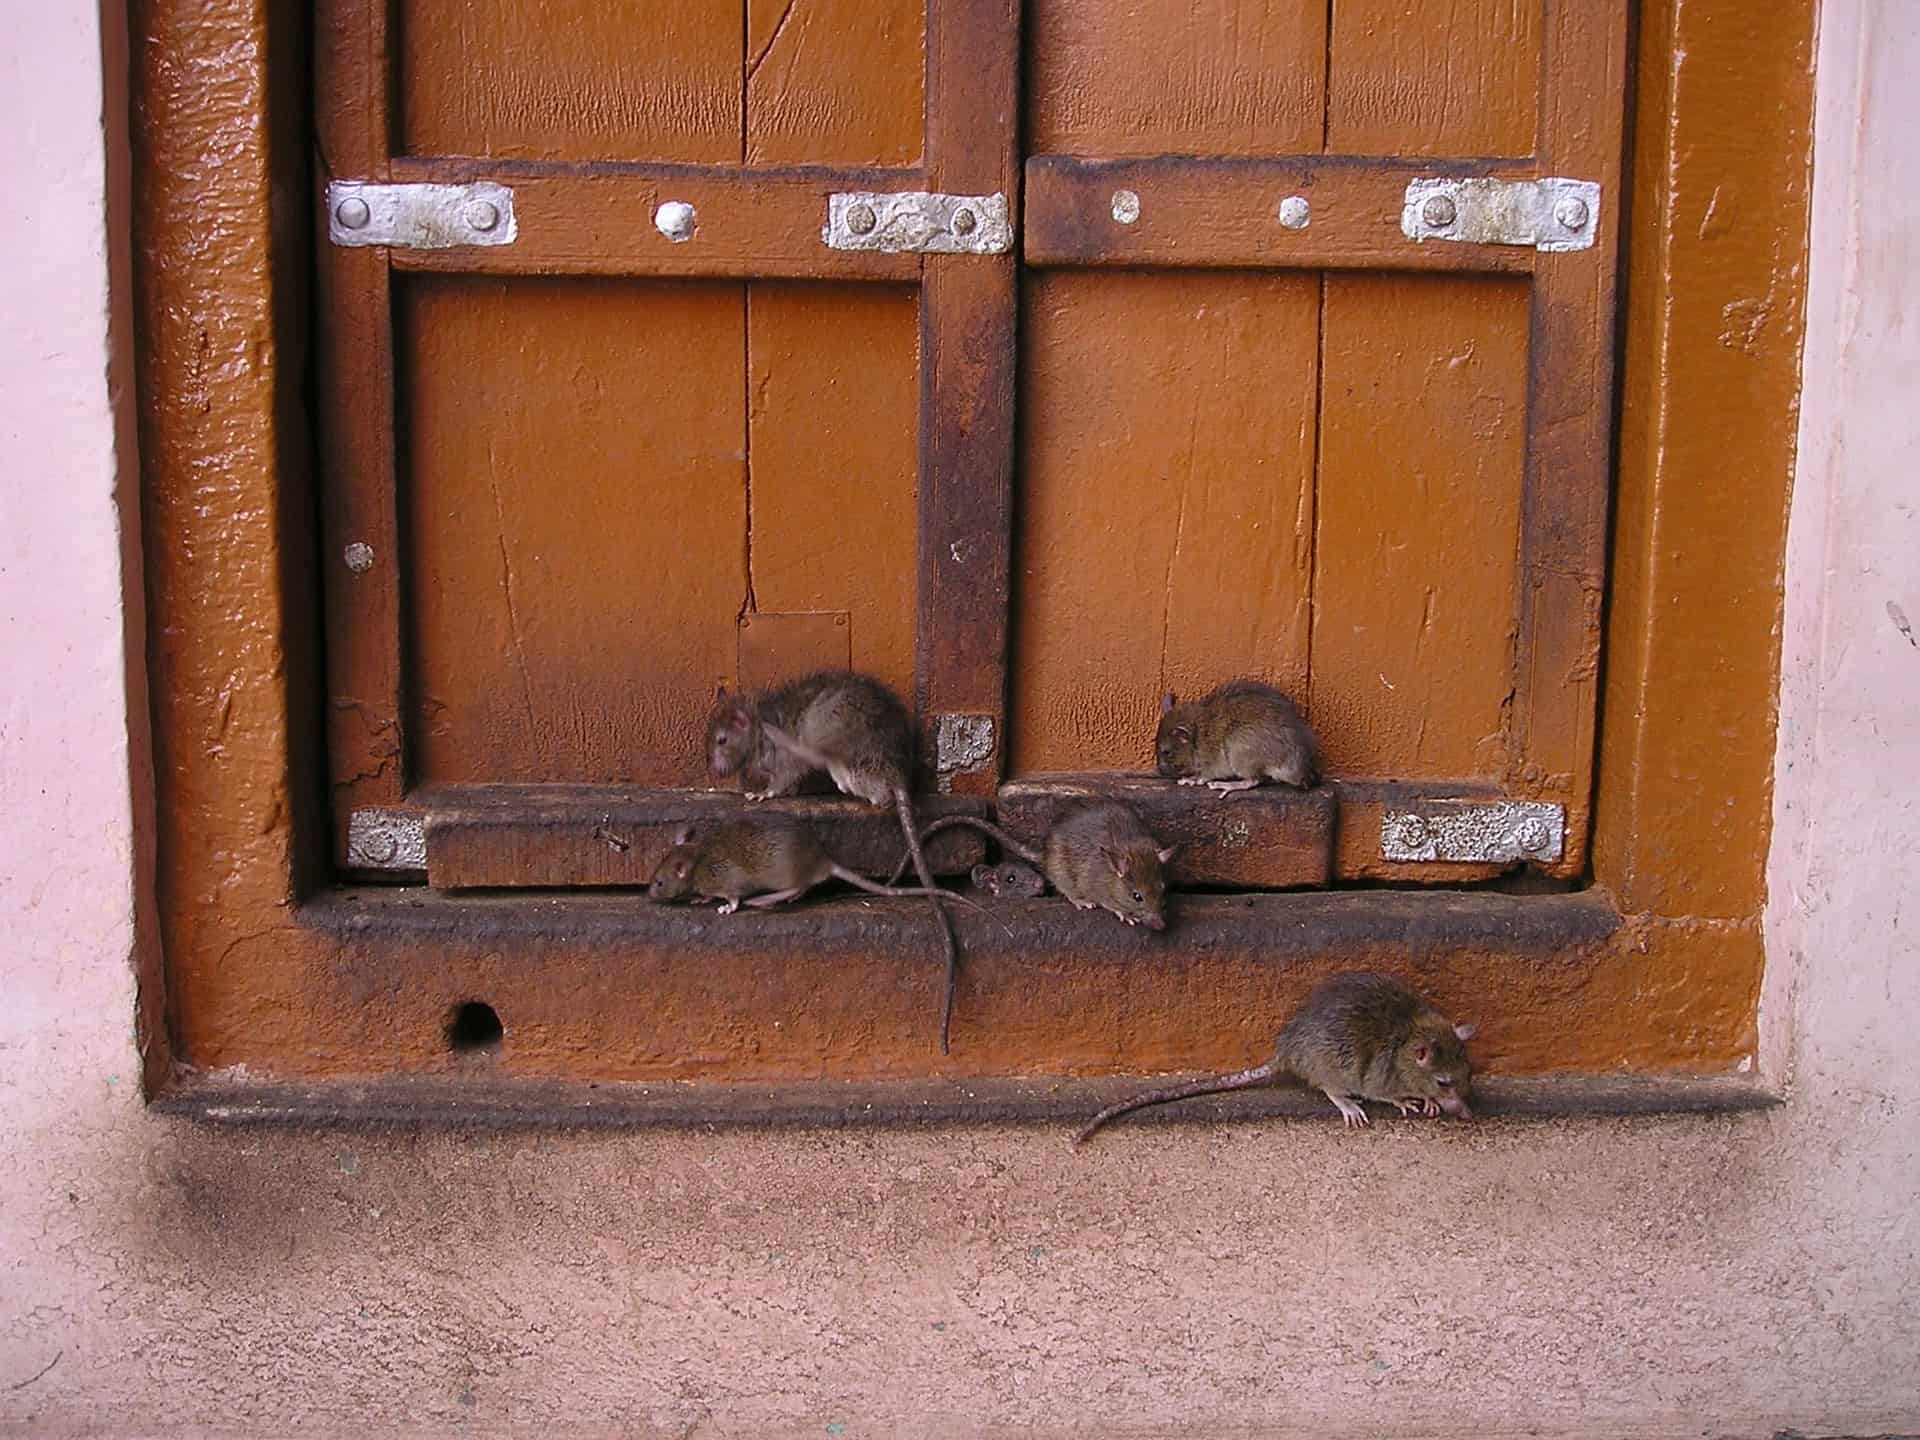 Several rats sitting on a windowsill